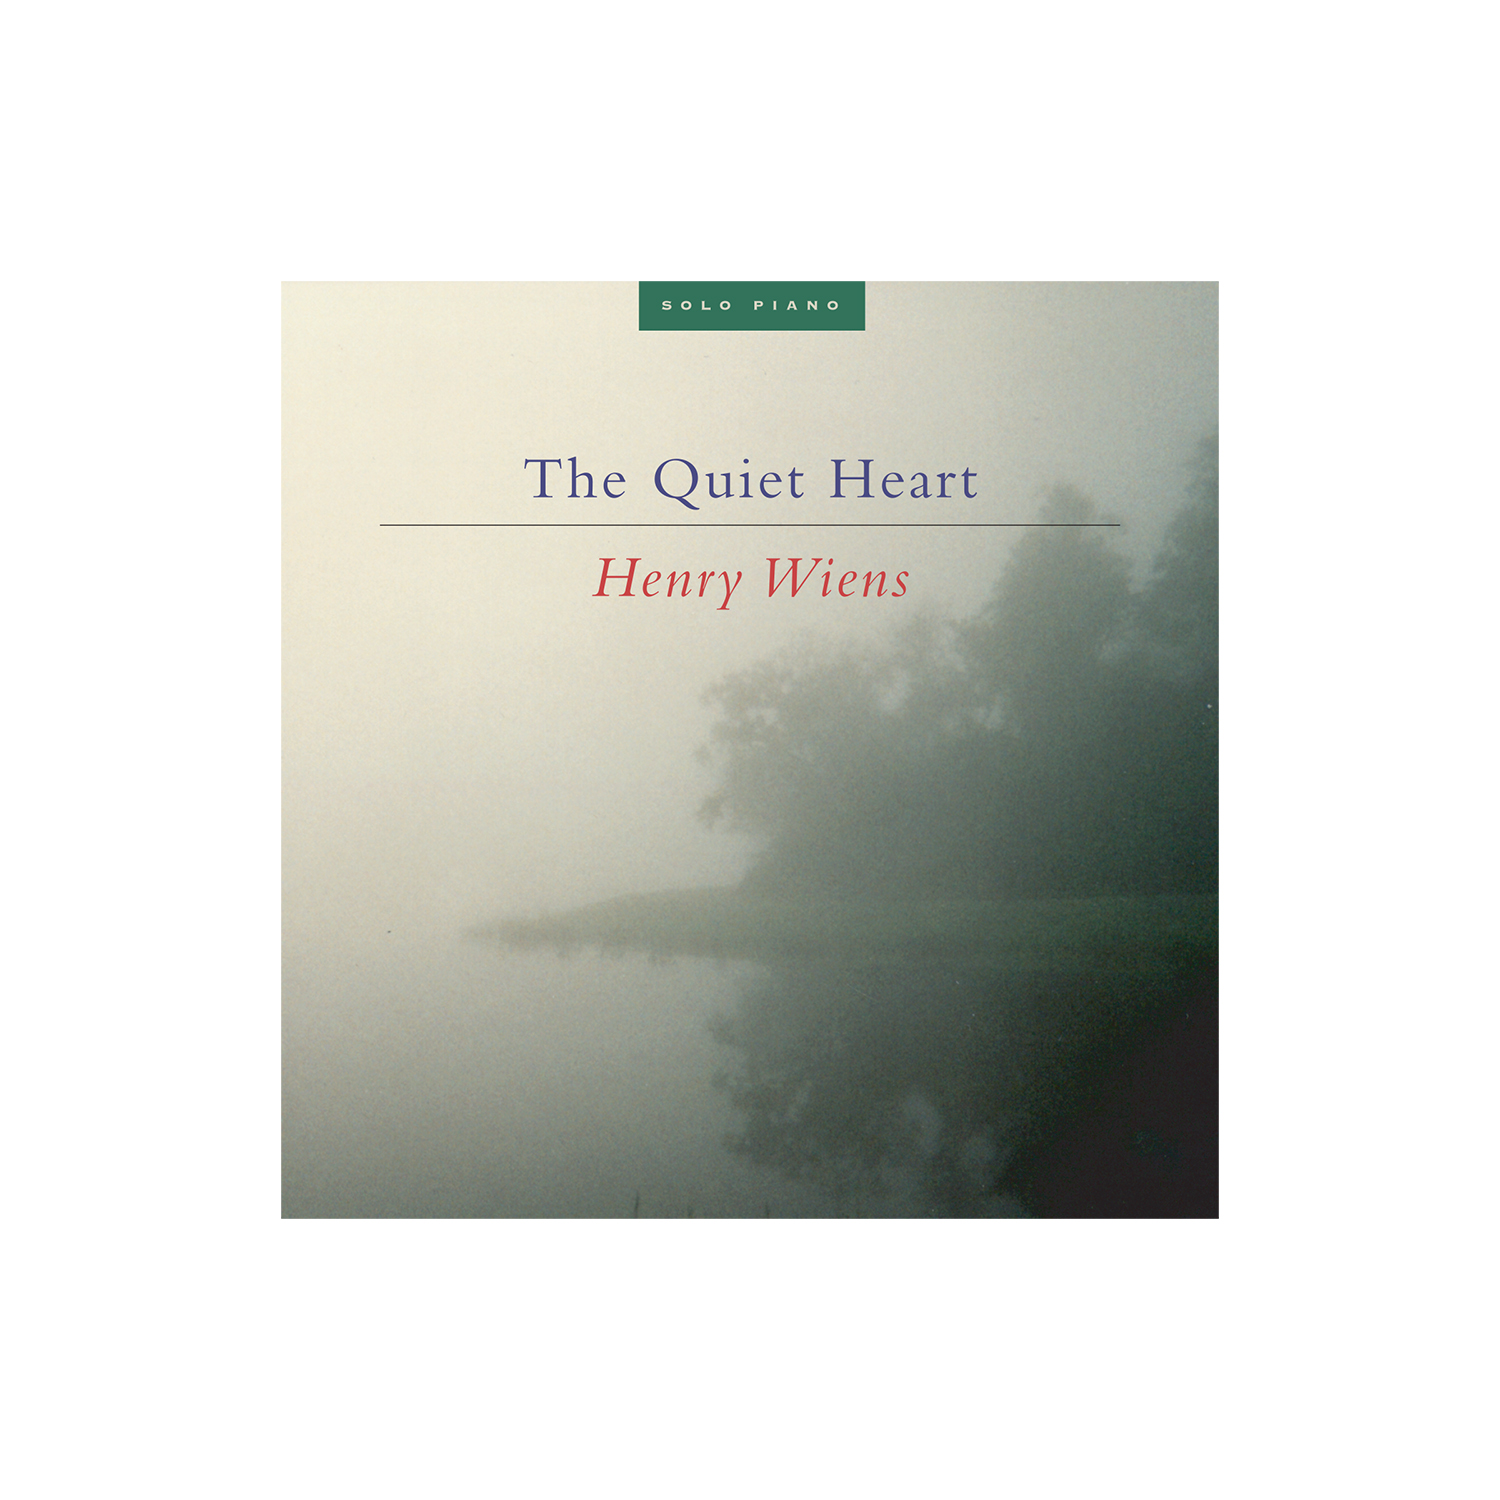 Quiet Heart cover2.jpg